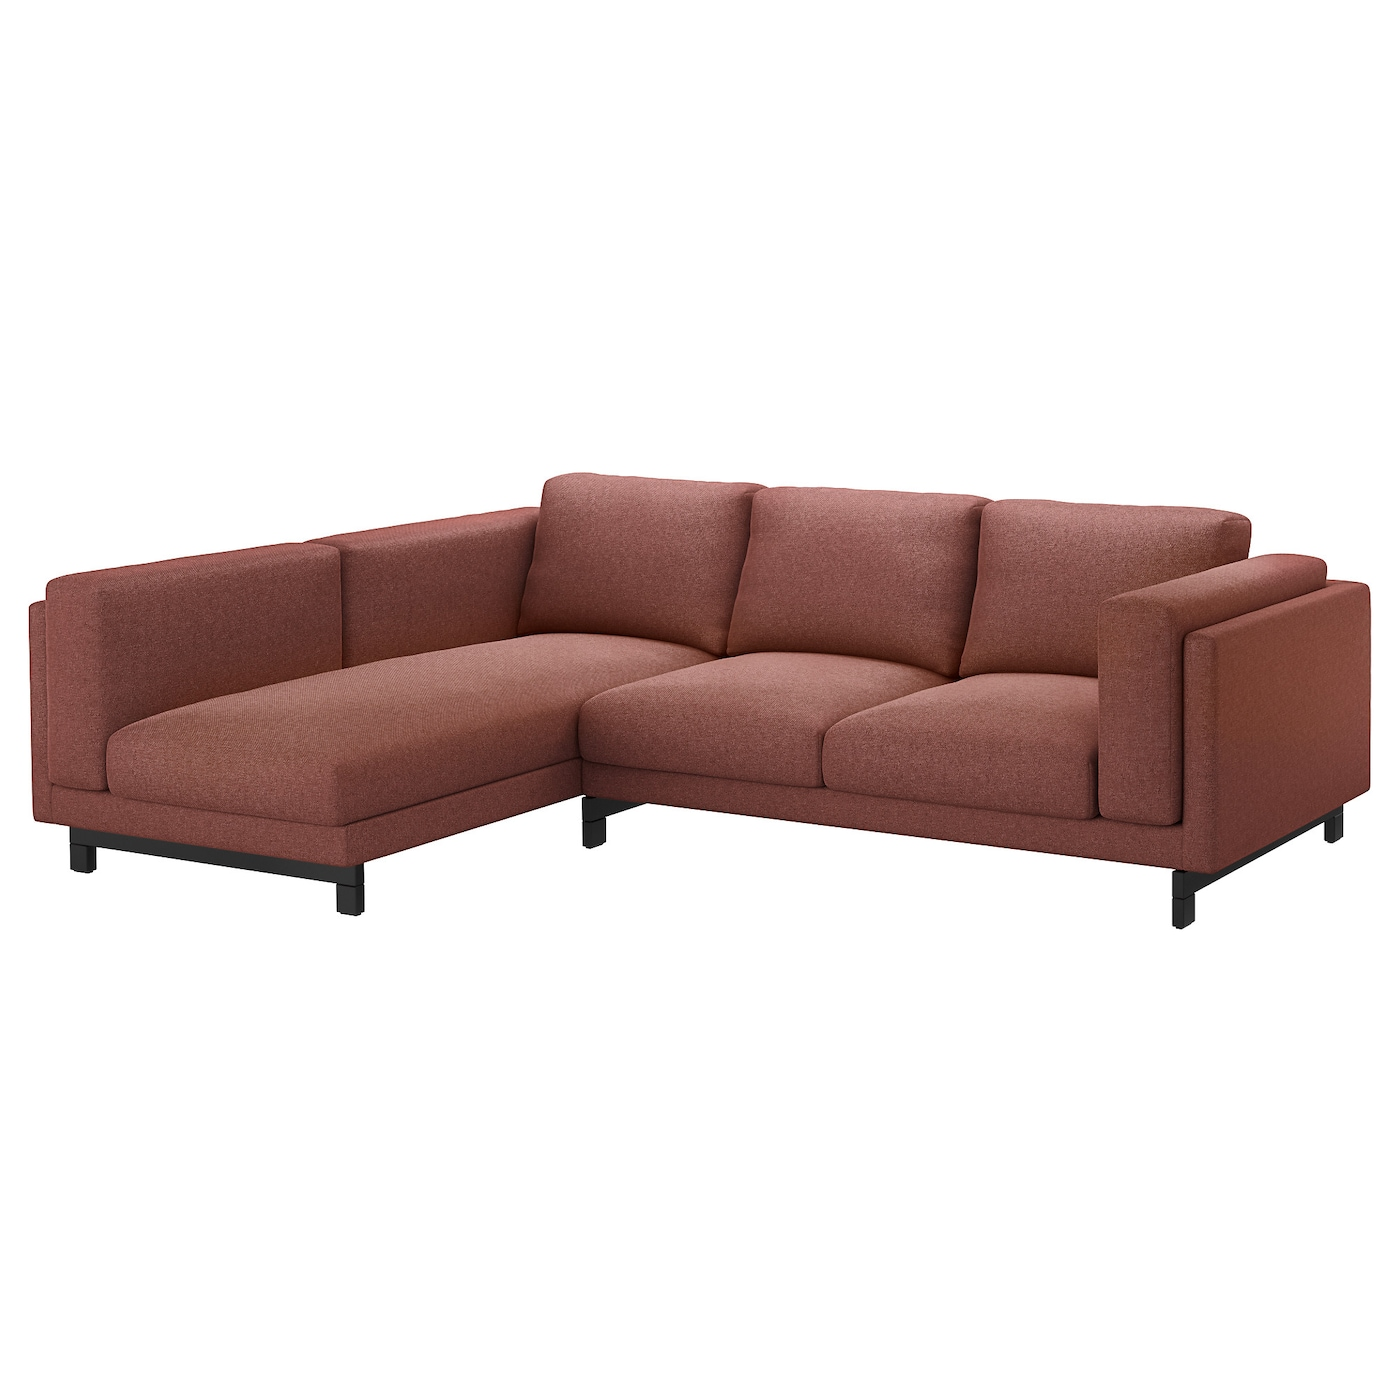 Nockeby two seat sofa w chaise longue left tallmyra rust for 2 seater chaise sofa